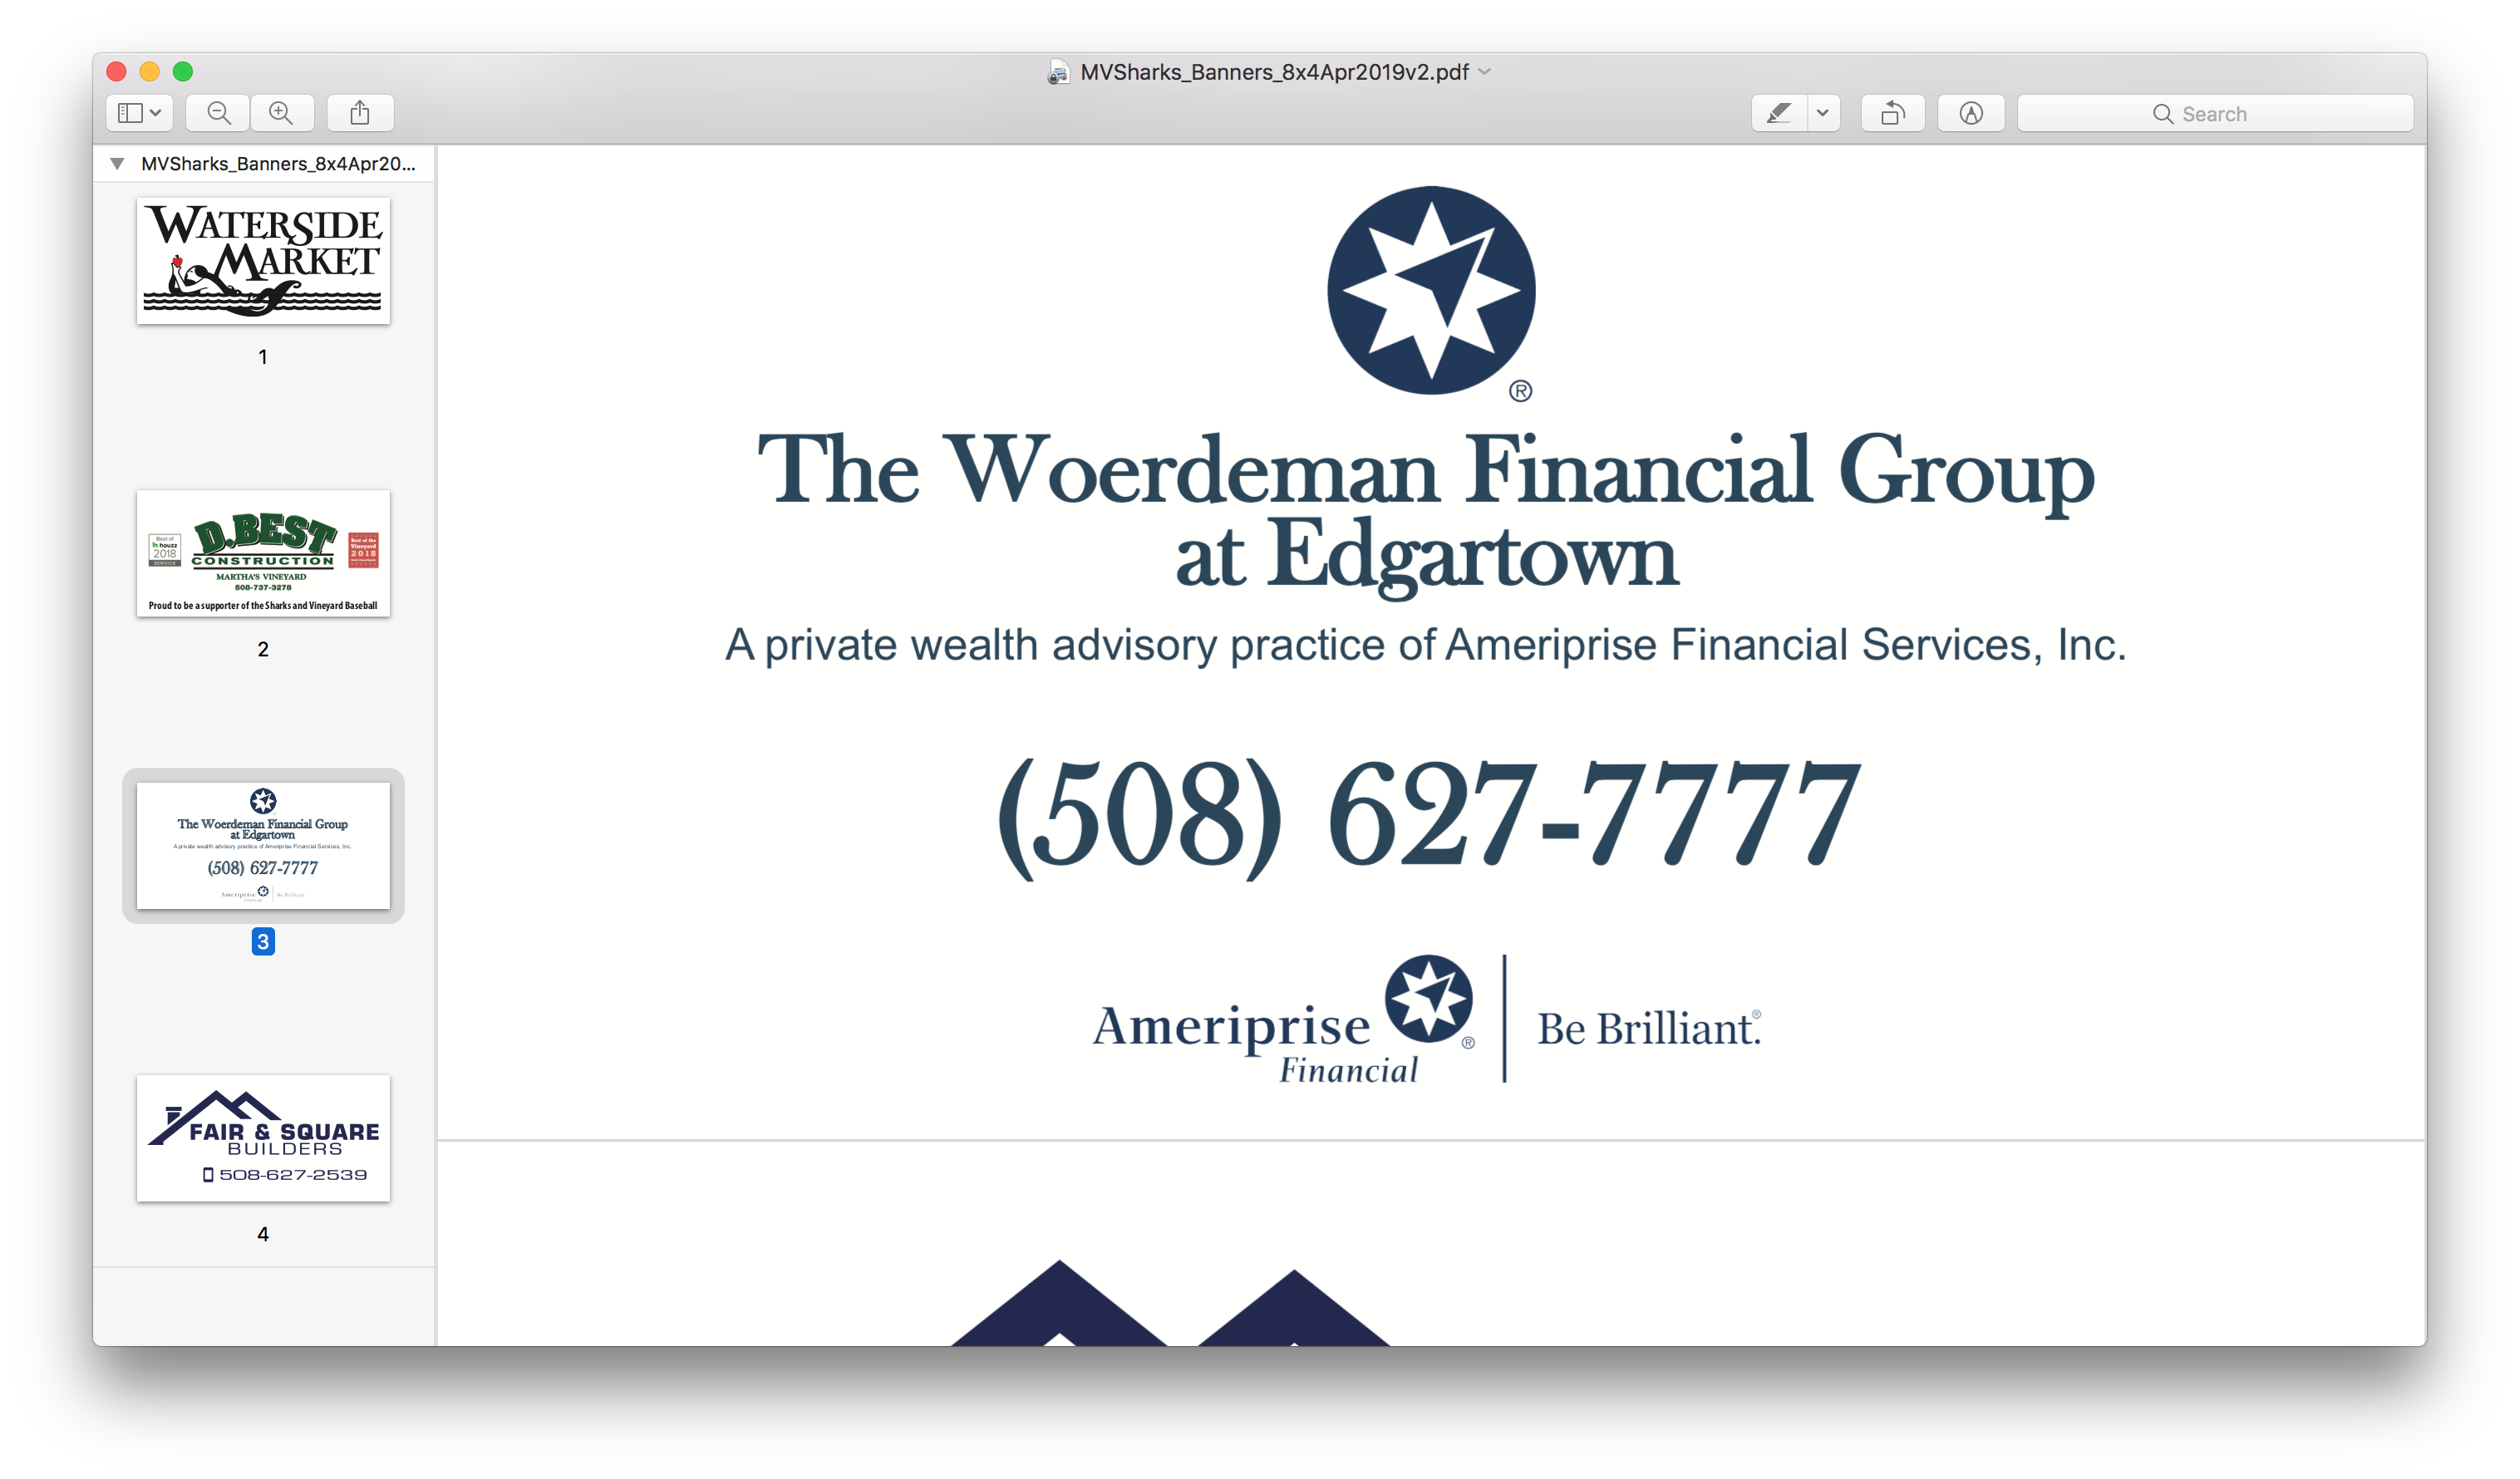 The Woerdeman Financial Group at Edgartown